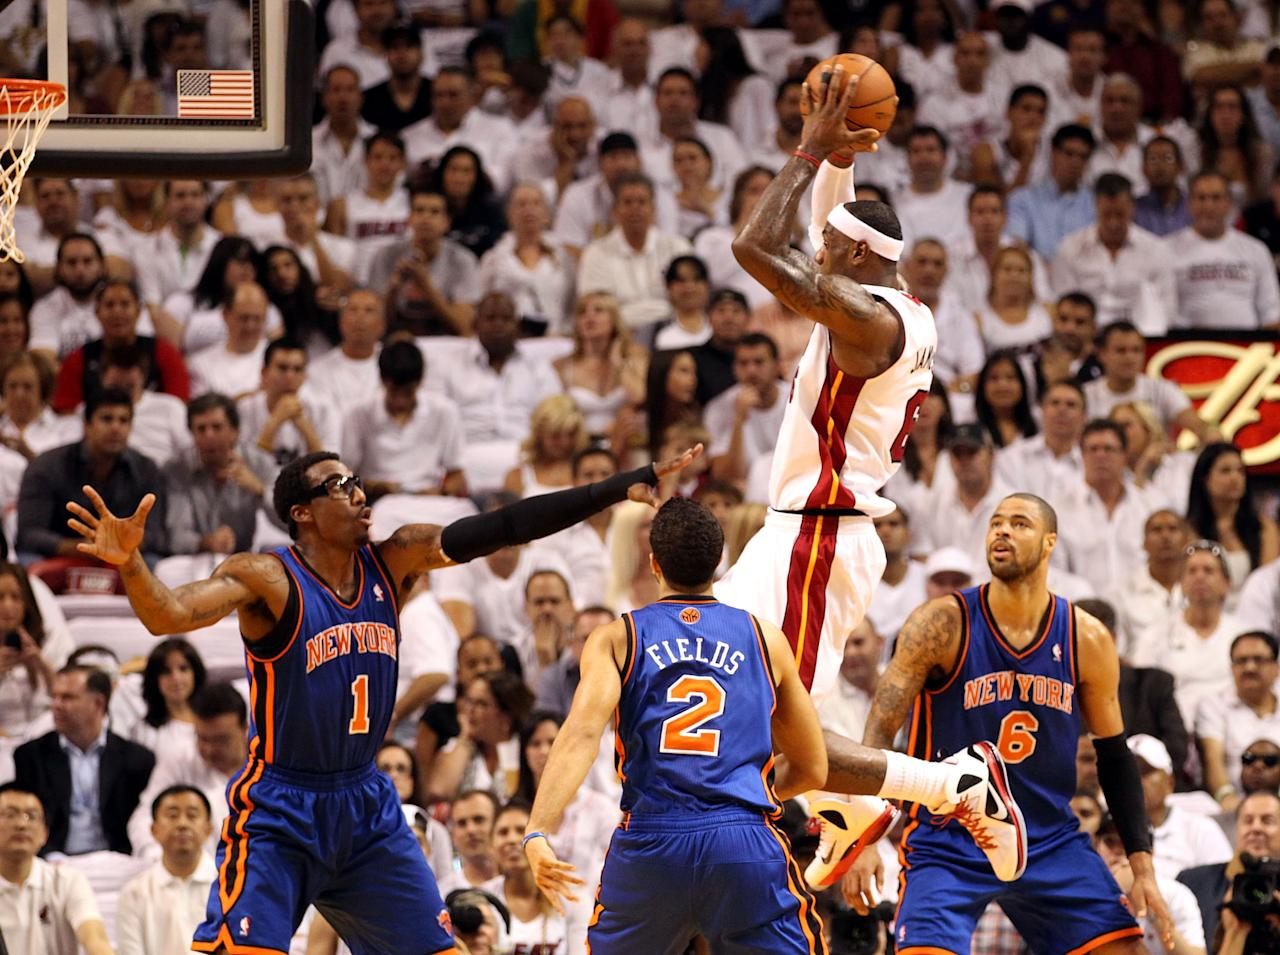 MIAMI, FL - MAY 09:  Forwards Tyson Chandler #6 and Amar'e Stoudemire #1 and guard Landry Fields #2 of the New York Knicks defend Forward LeBron James #6 of the Miami Heat in Game Five of the Eastern Conference Quarterfinals in the 2012 NBA Playoffs  on May 9, 2012 at the American Airines Arena in Miami, Florida. NOTE TO USER: User expressly acknowledges and agrees that, by downloading and or using this photograph, User is consenting to the terms and conditions of the Getty Images License Agreement.  (Photo by Marc Serota/Getty Images)